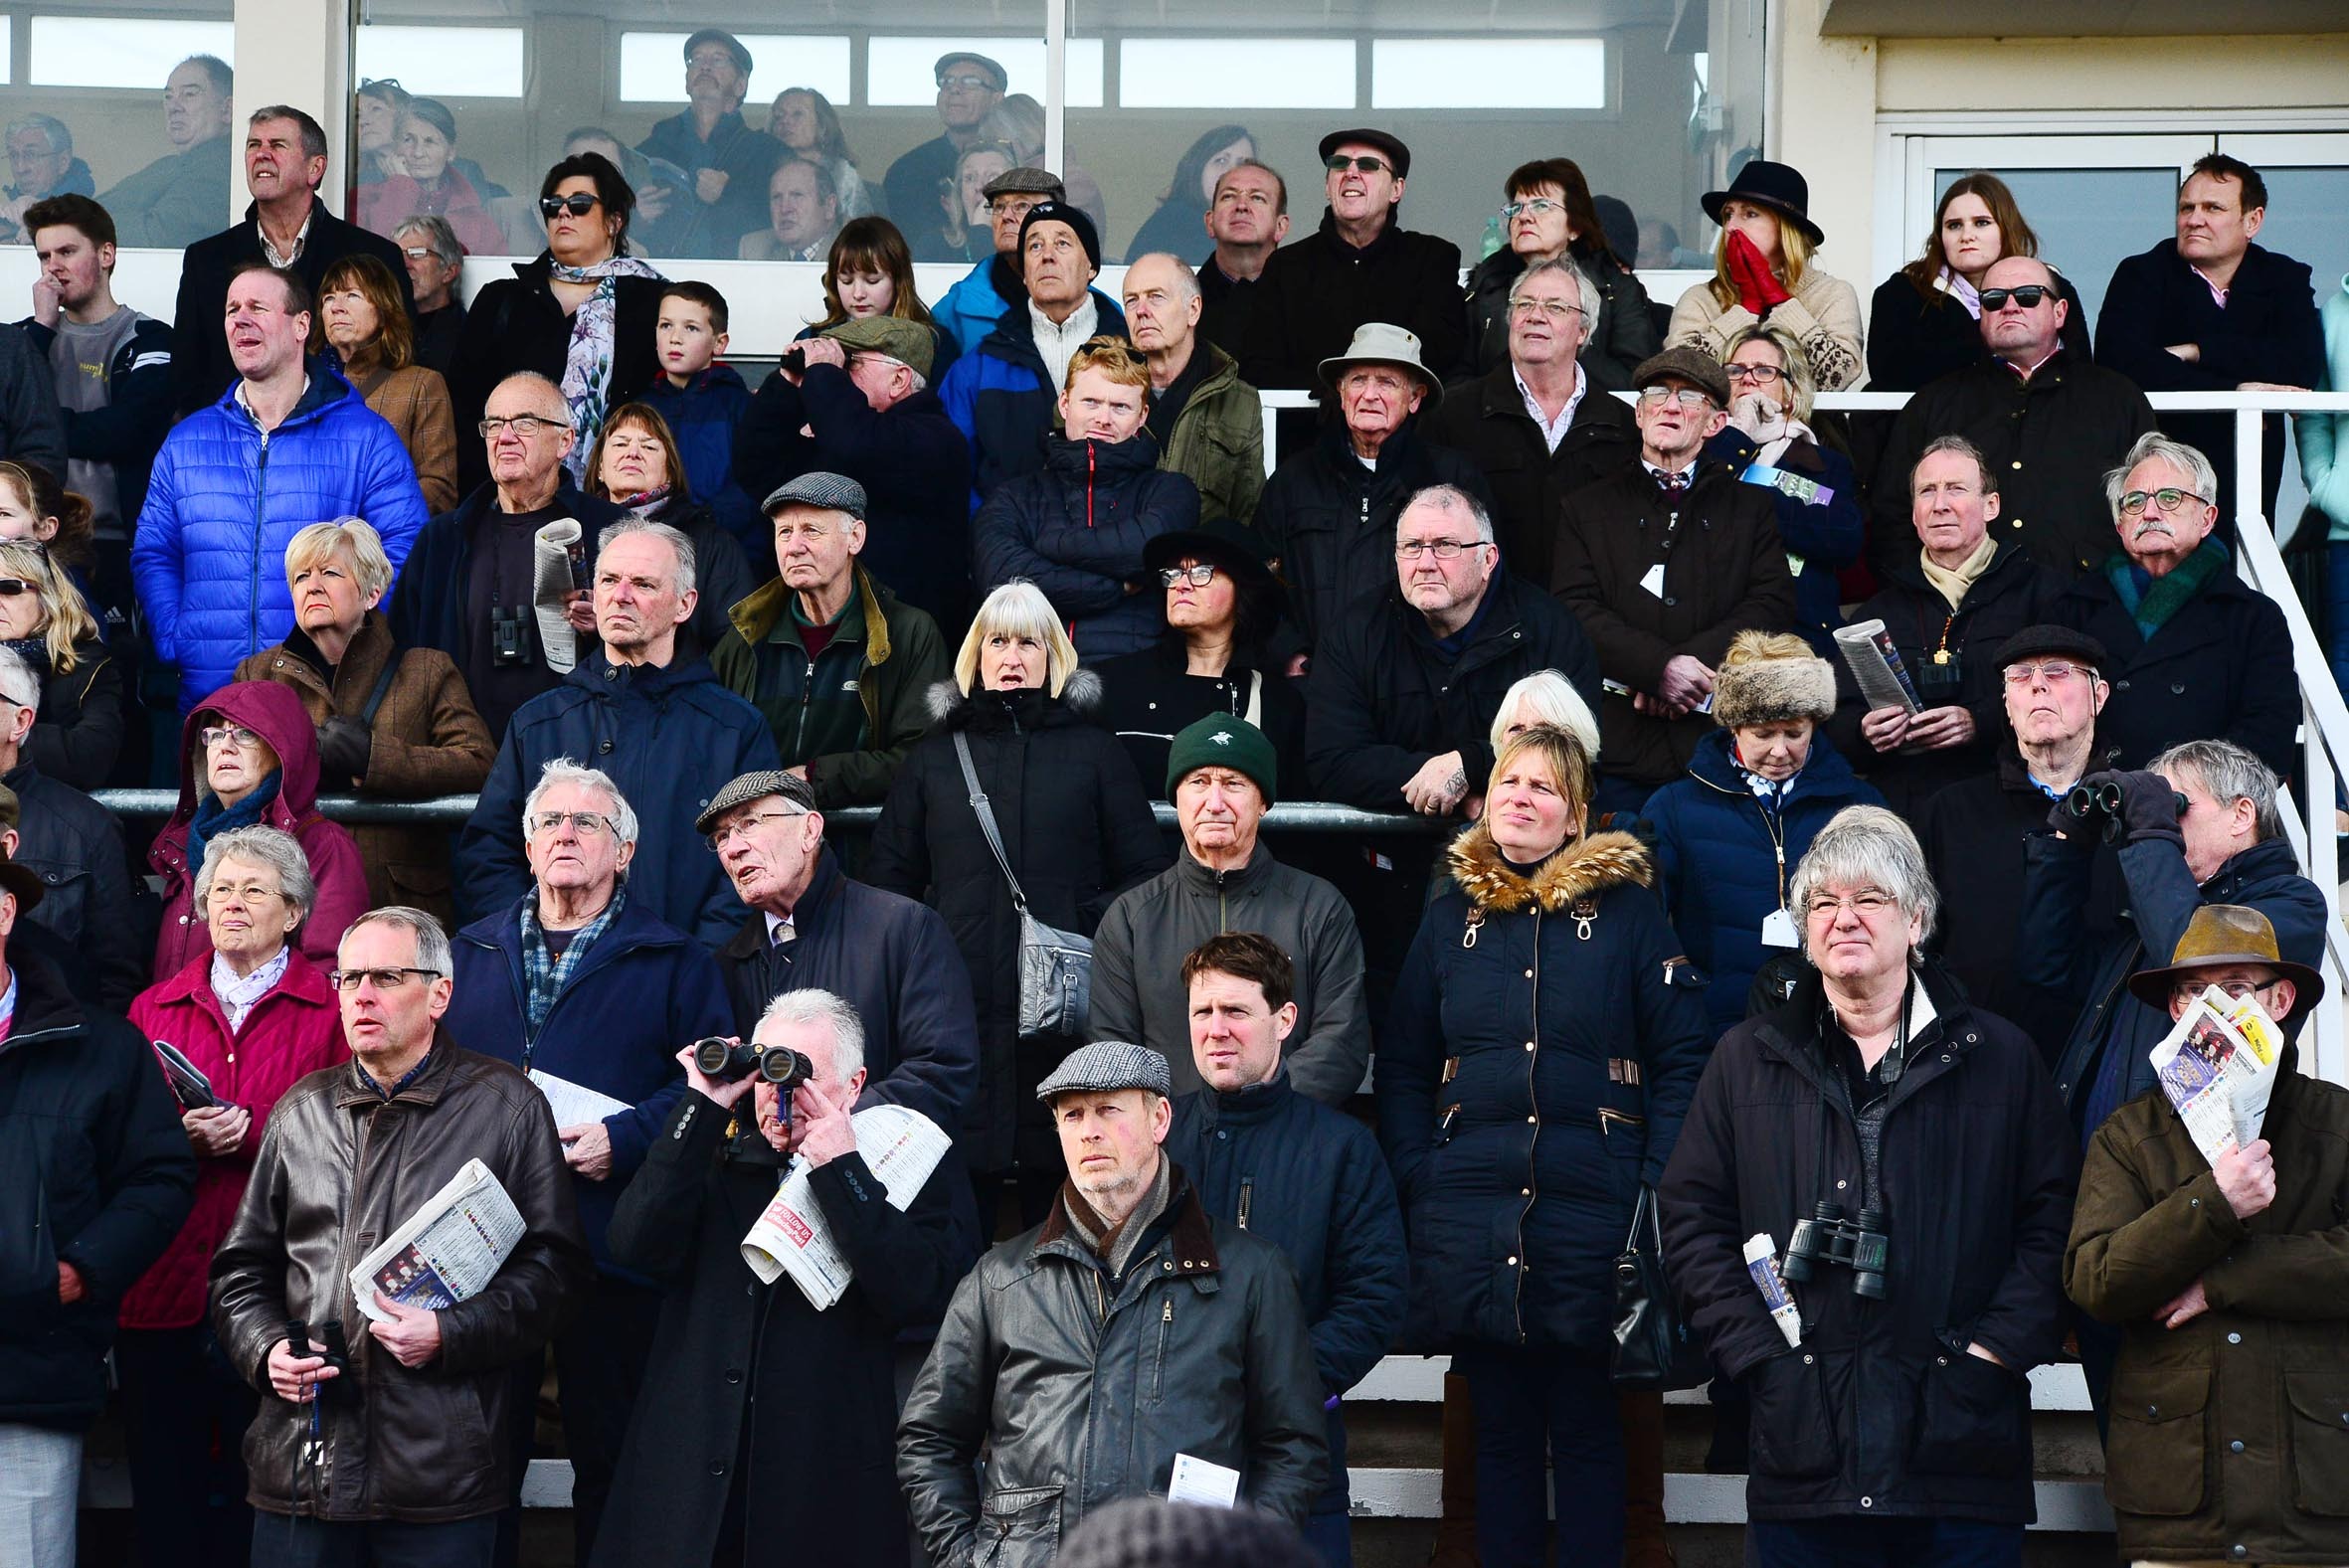 PUNTERS: Going for glory at Taunton races